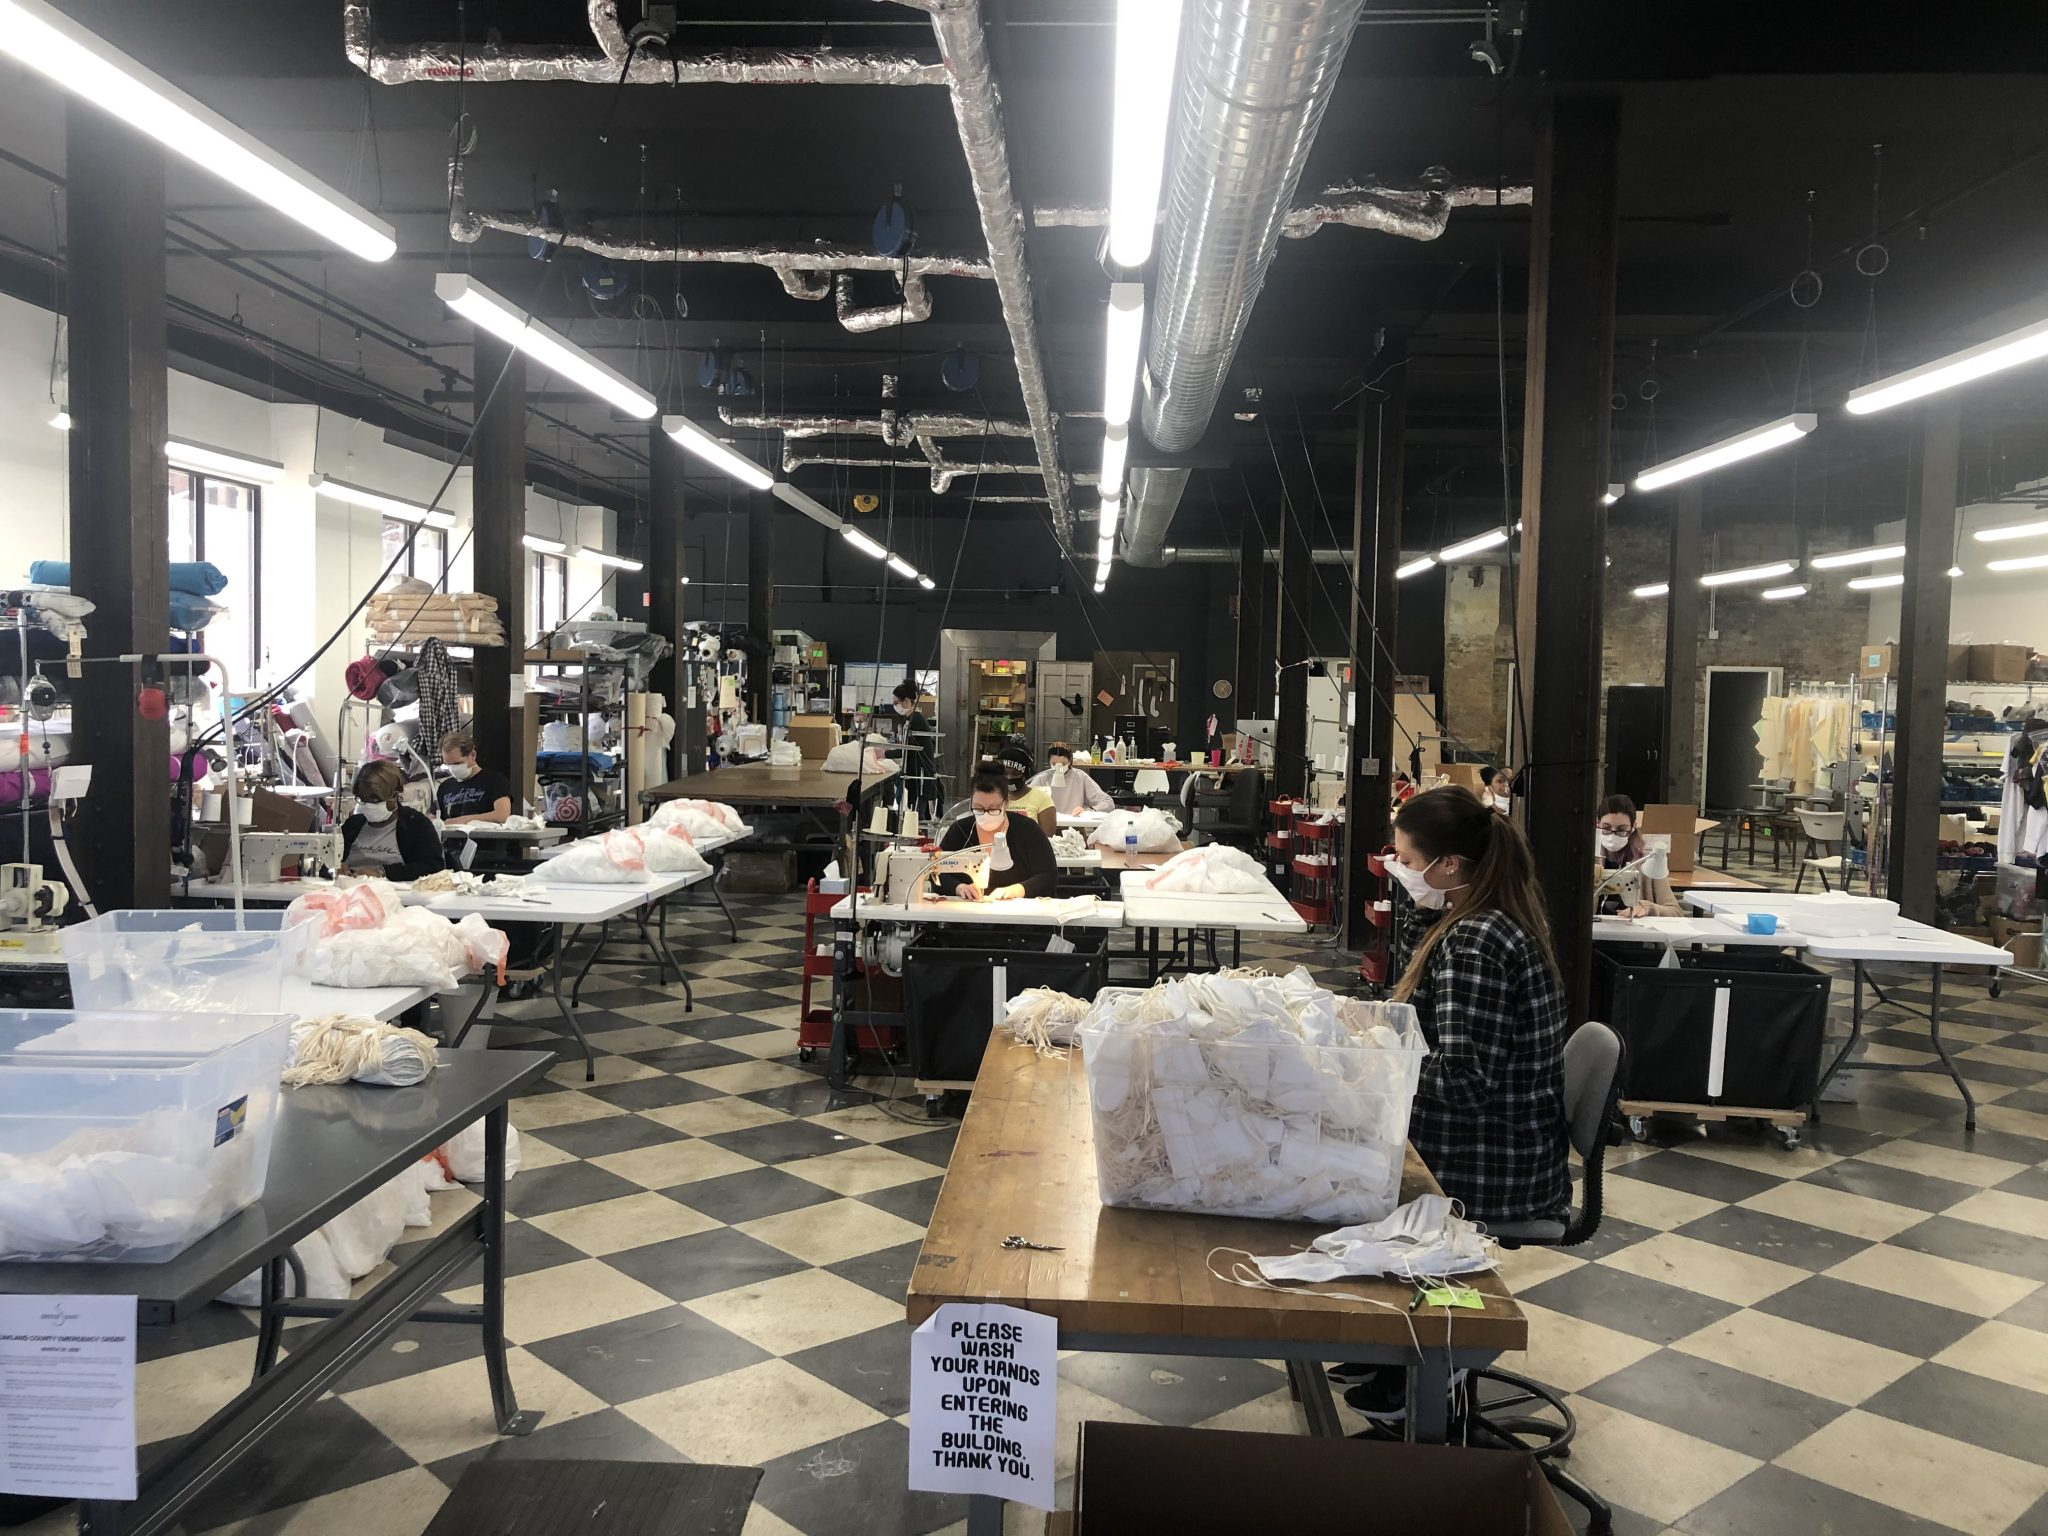 THE PRODUCTION OF MASKS AT DETROIT SEW. PHOTO DETROIT SEW